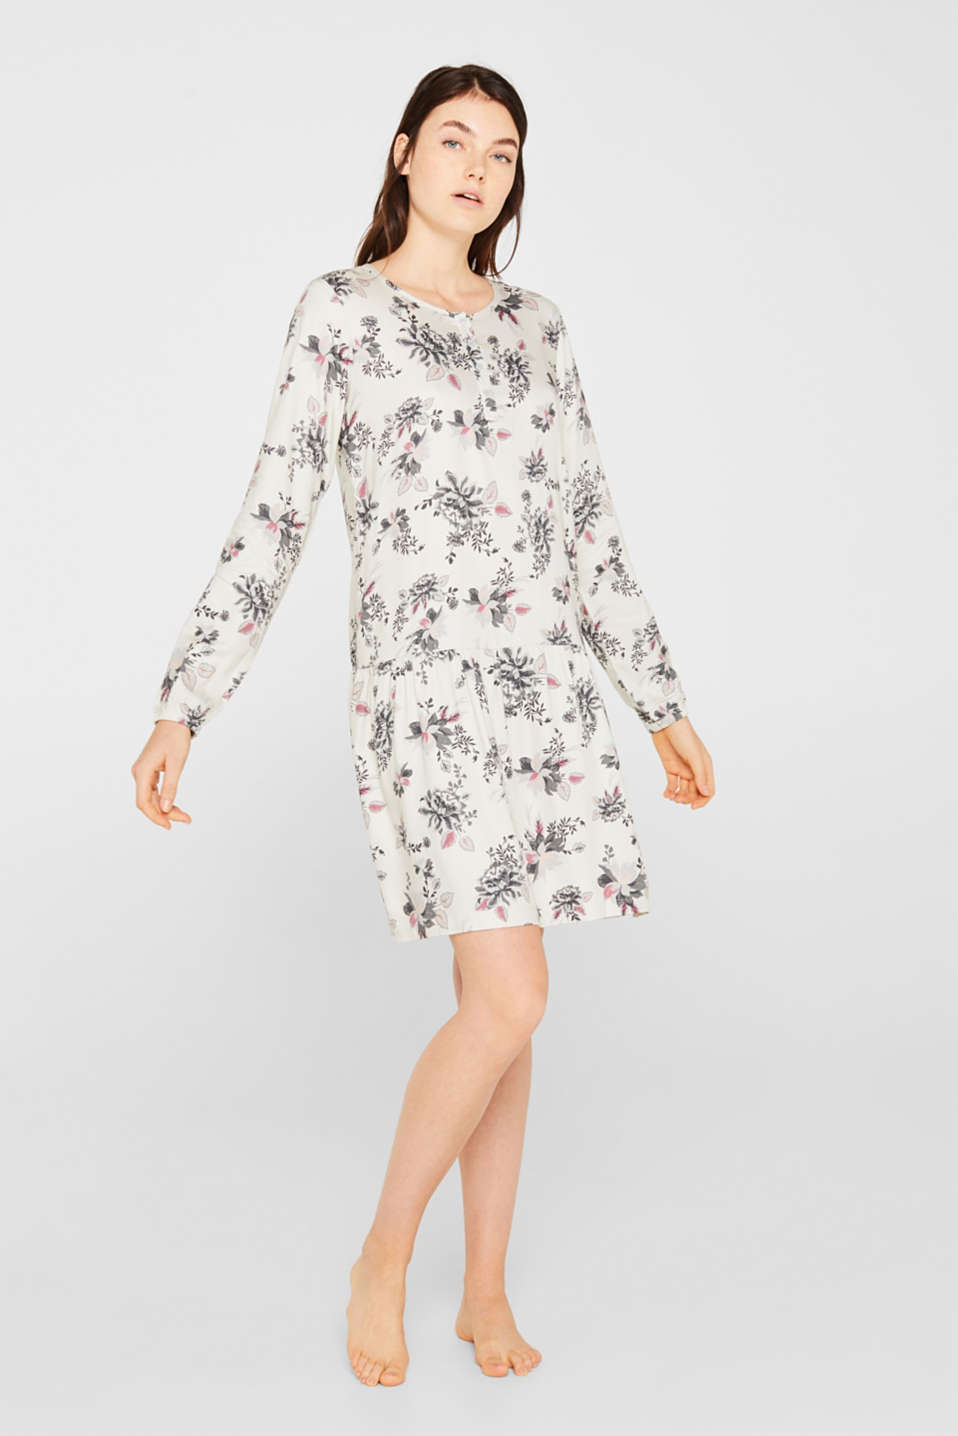 Esprit - Woven nightshirt with a swirling skirt